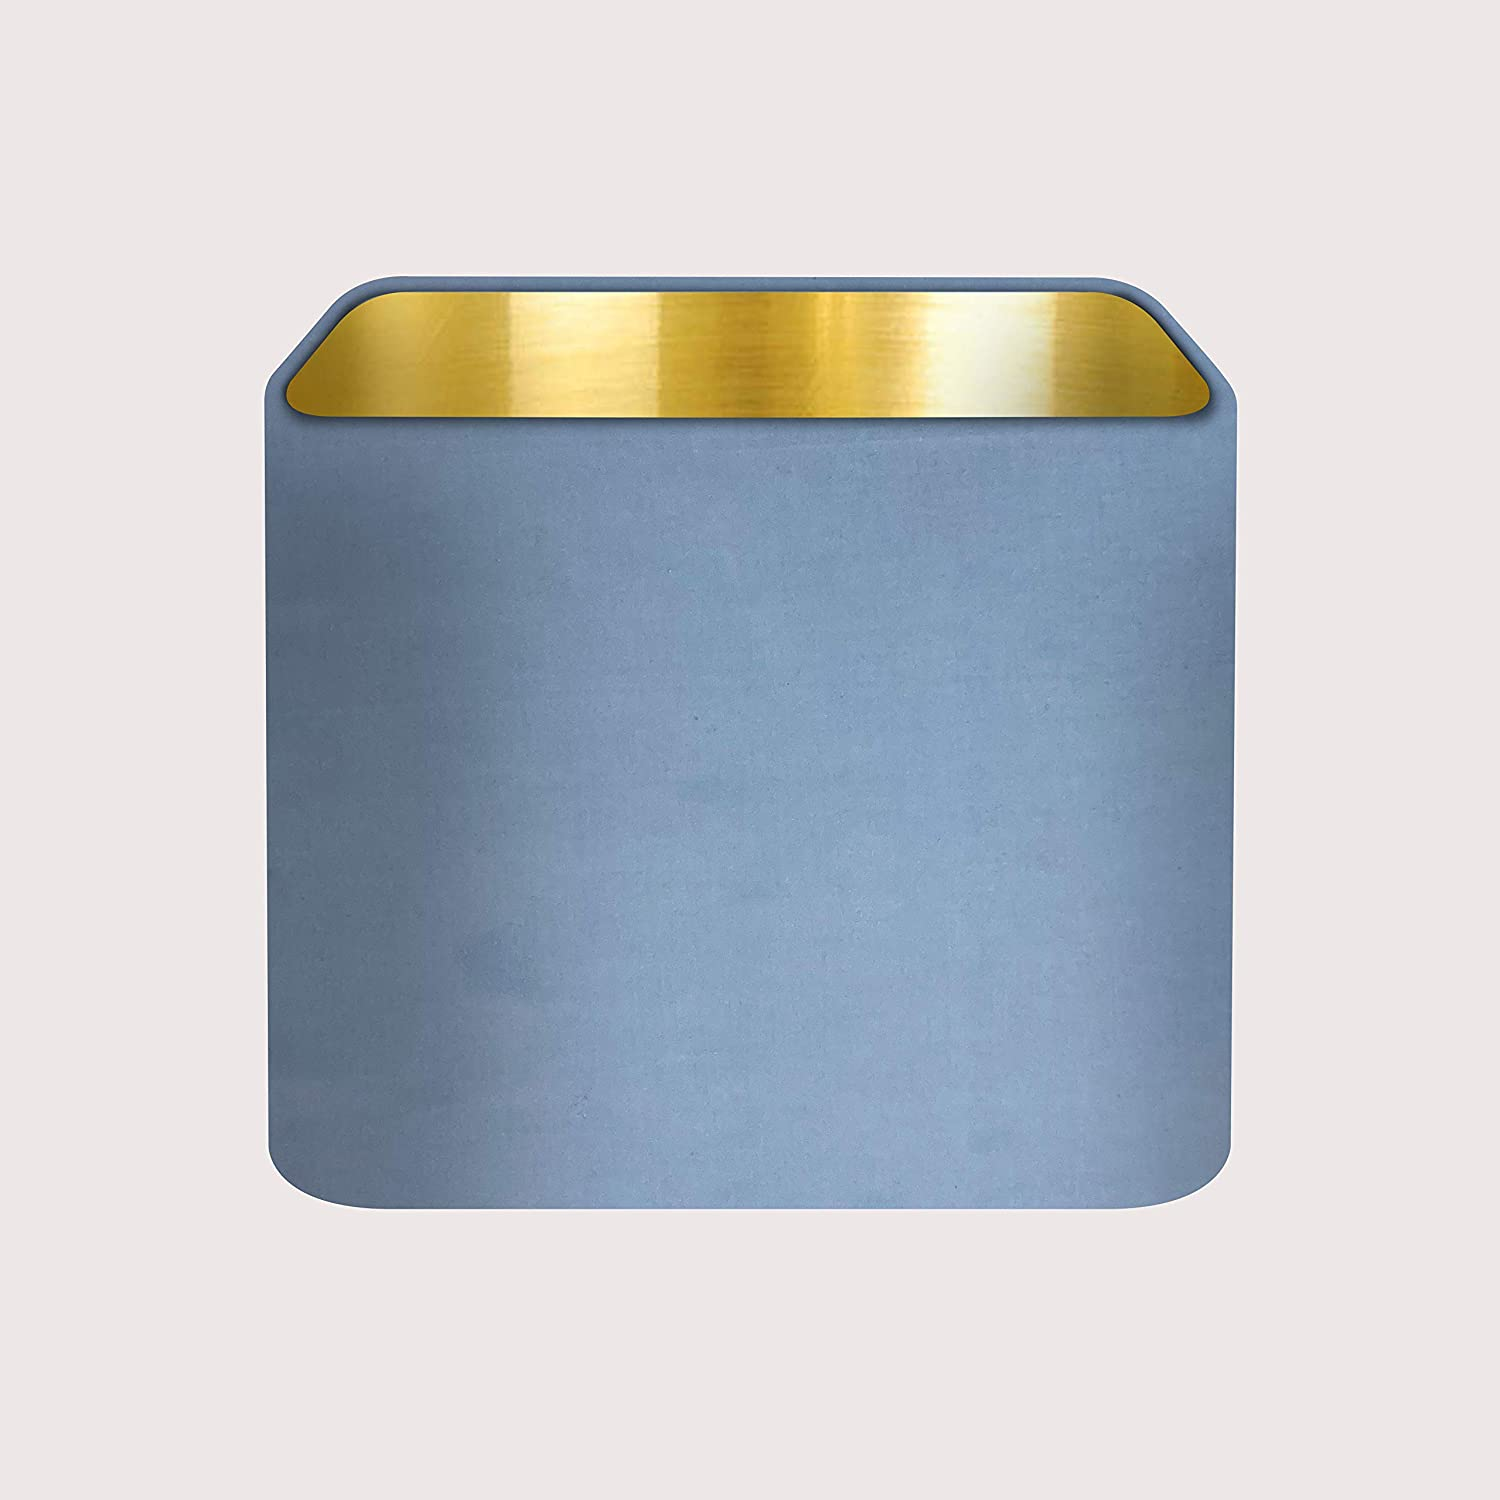 Rounded Square Teal Blue Velvet Fabric with a Brushed Silver Metallic Lining Lampshade Light Shade